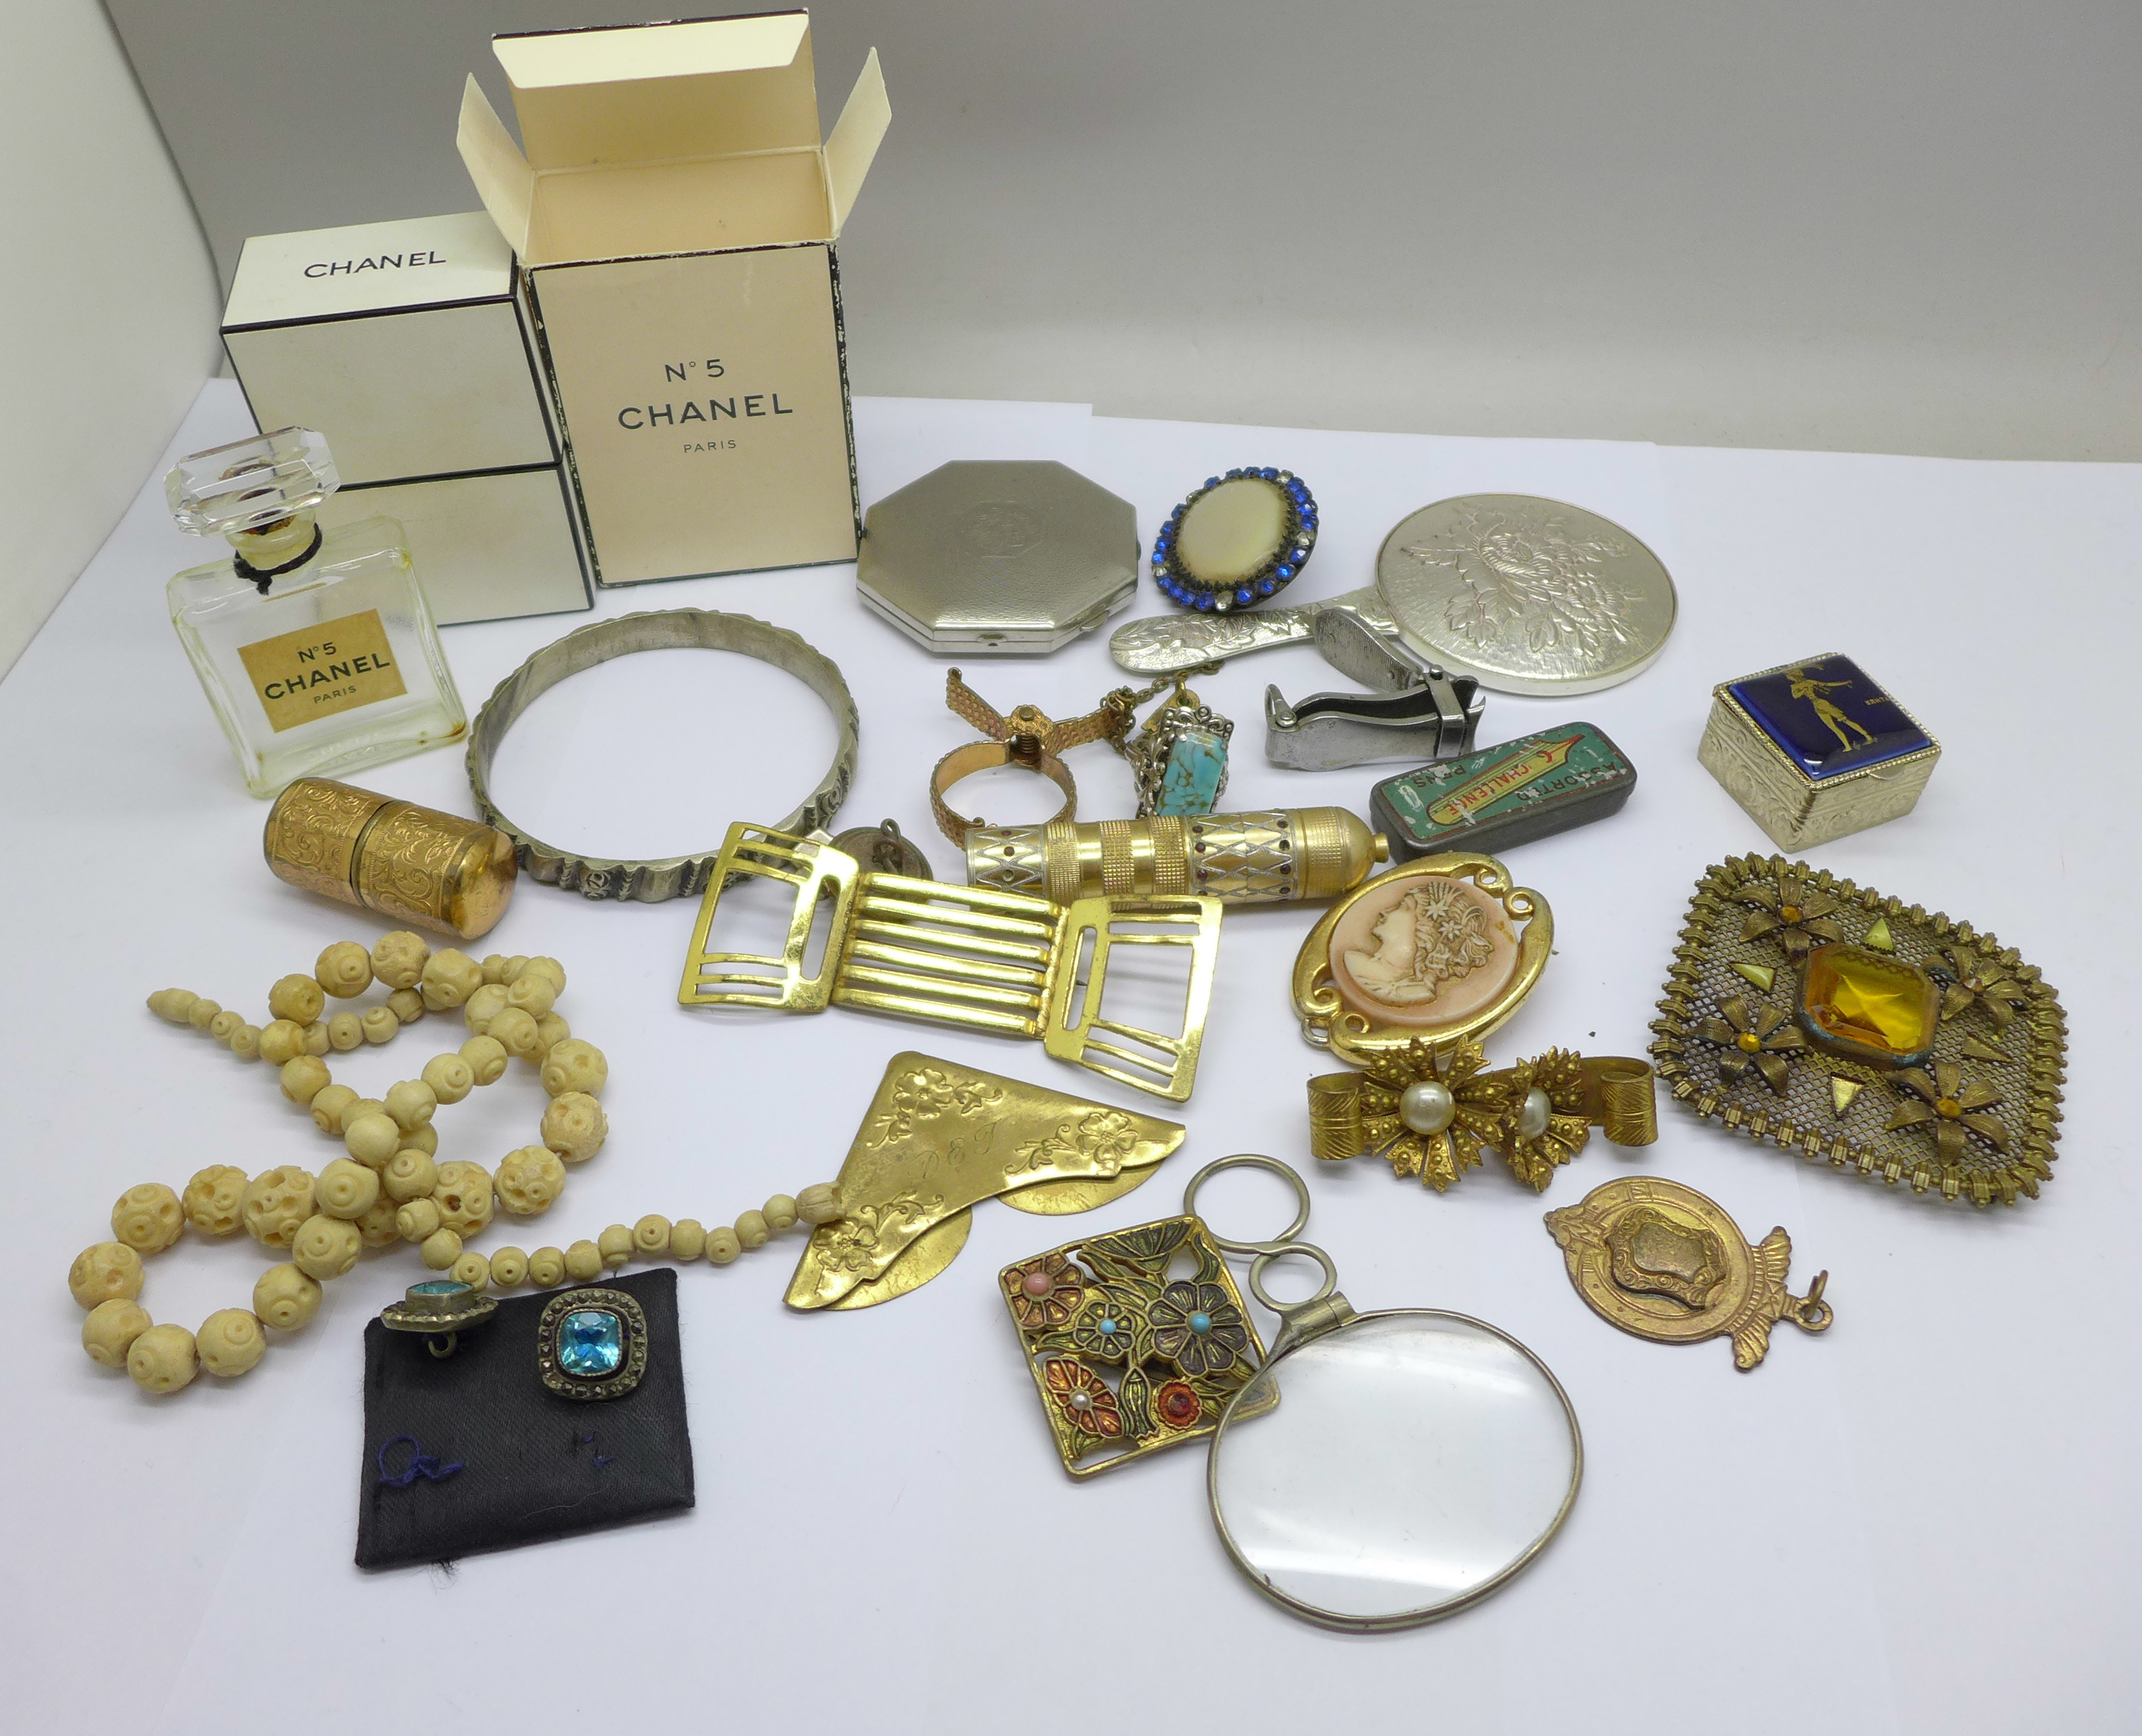 Vintage jewellery, a compact, a mirror, etc.